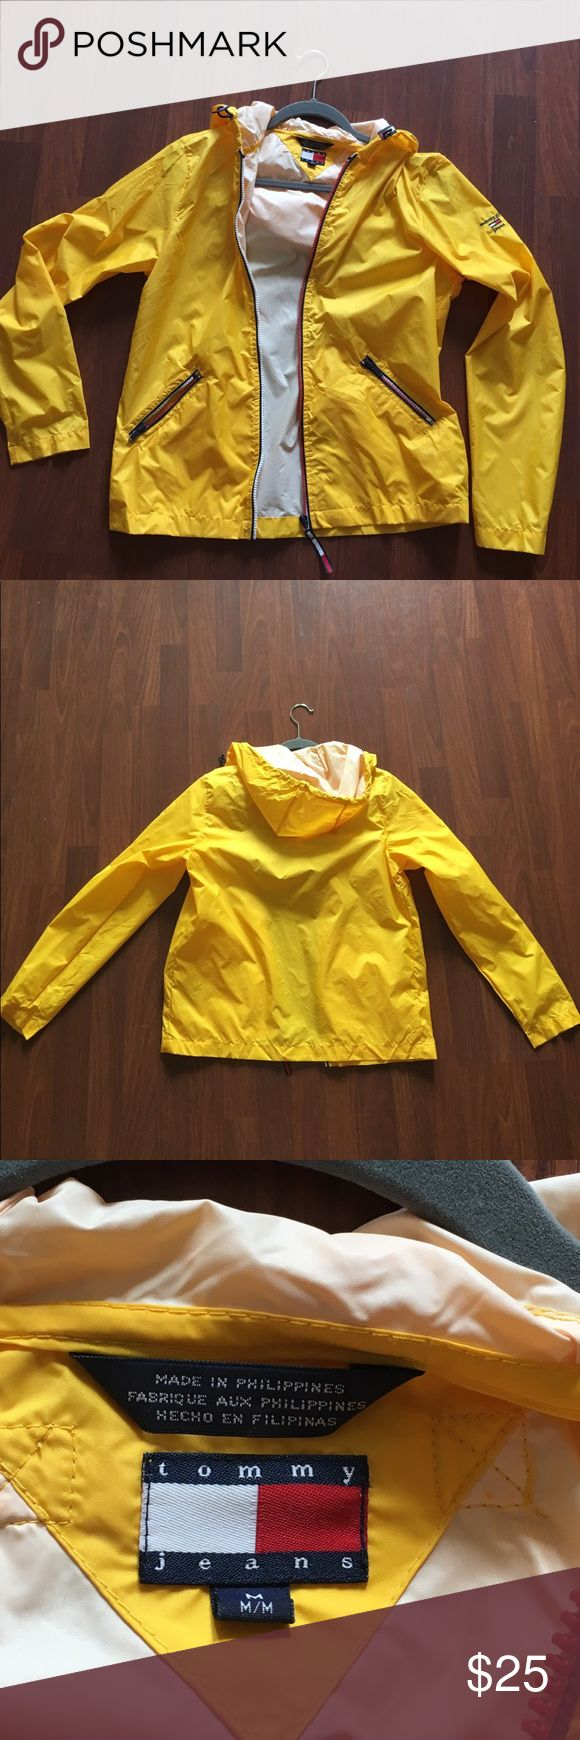 Tommy Hilfiger - Yellow Hooded Raincoat Tommy Girl yellow hooded raincoat. Zipper. Adjustable hood. Runs small. Tommy Hilfiger Jackets & Coats